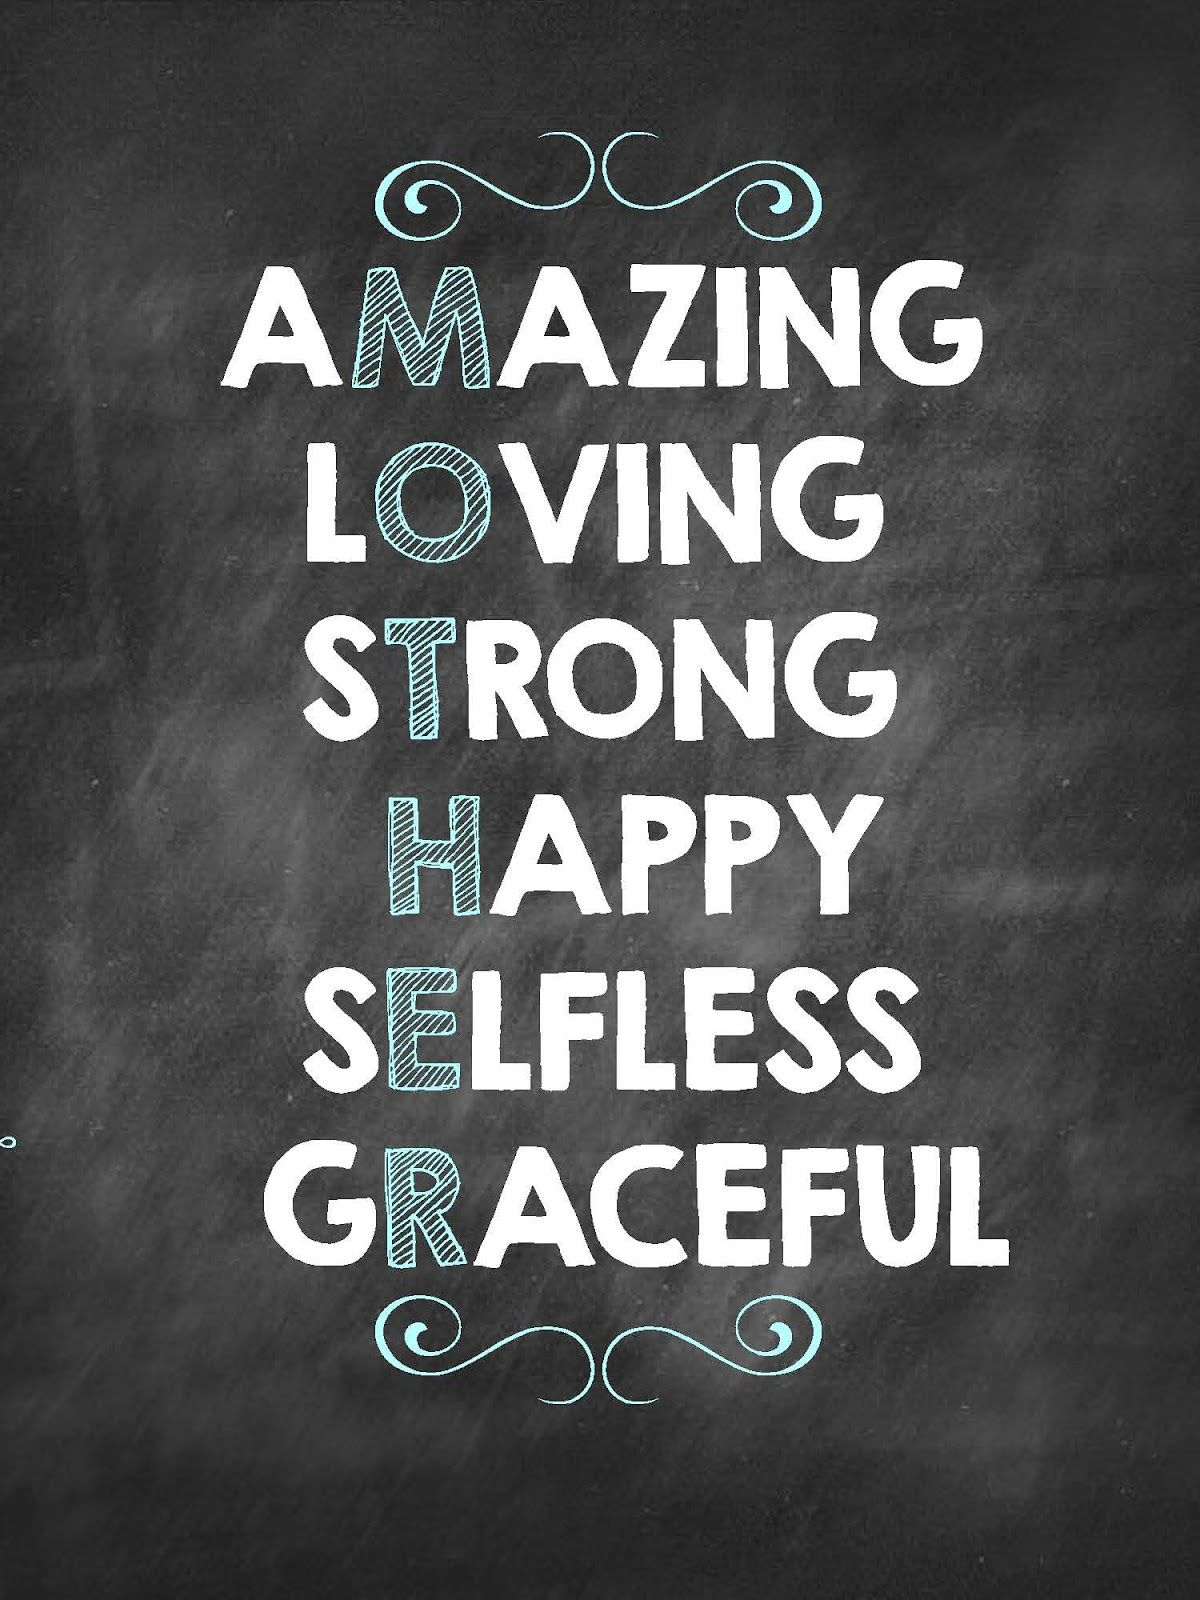 Mothers Day Quotes Amazing Loving Strong Happy Selfless Gracefulthat's What A